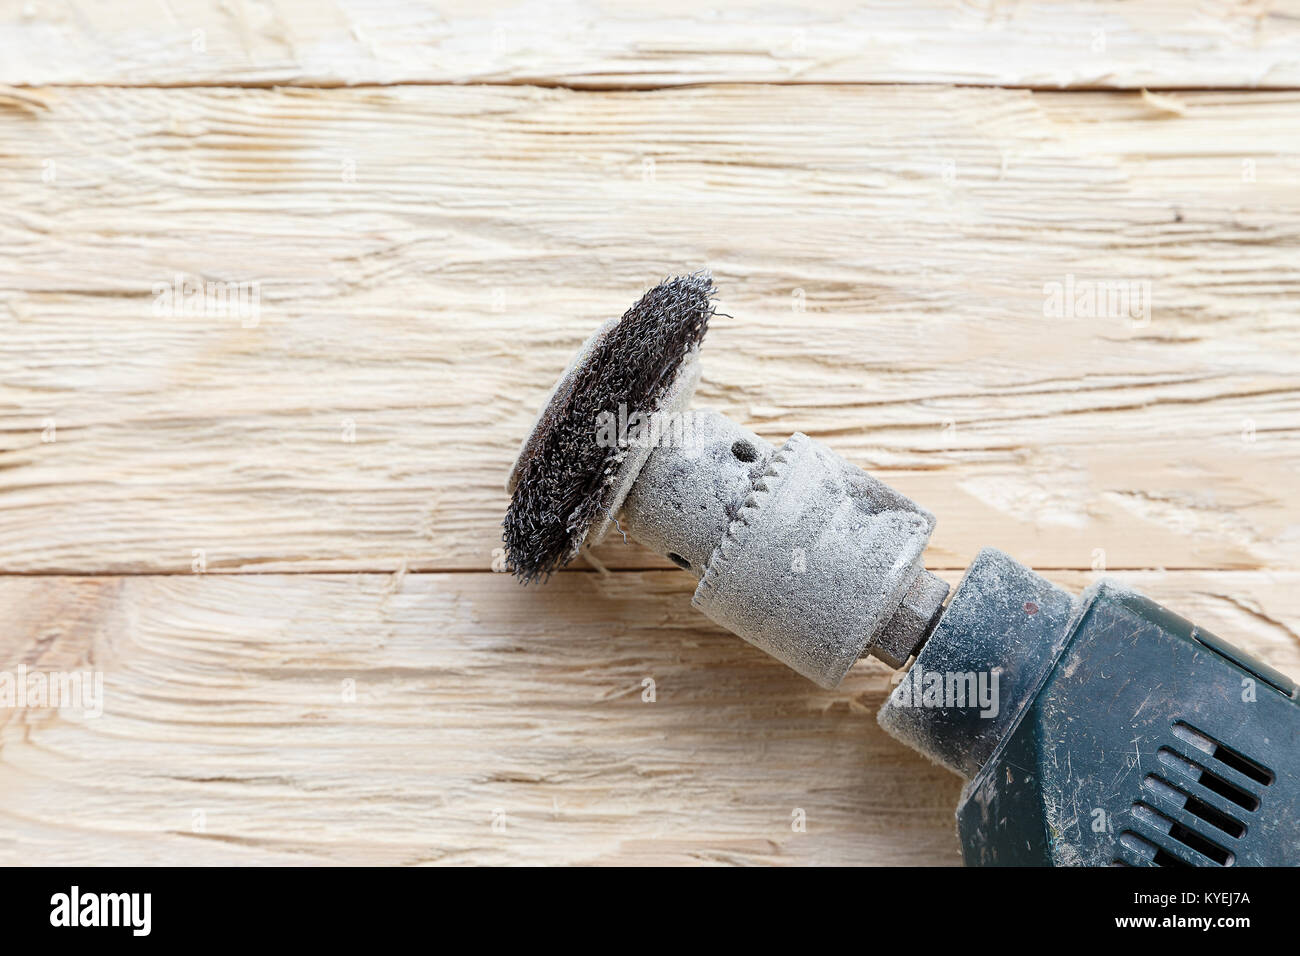 attachment on a drill, scrape, metal rotating brush. attachment is on a rough wooden surface - Stock Image